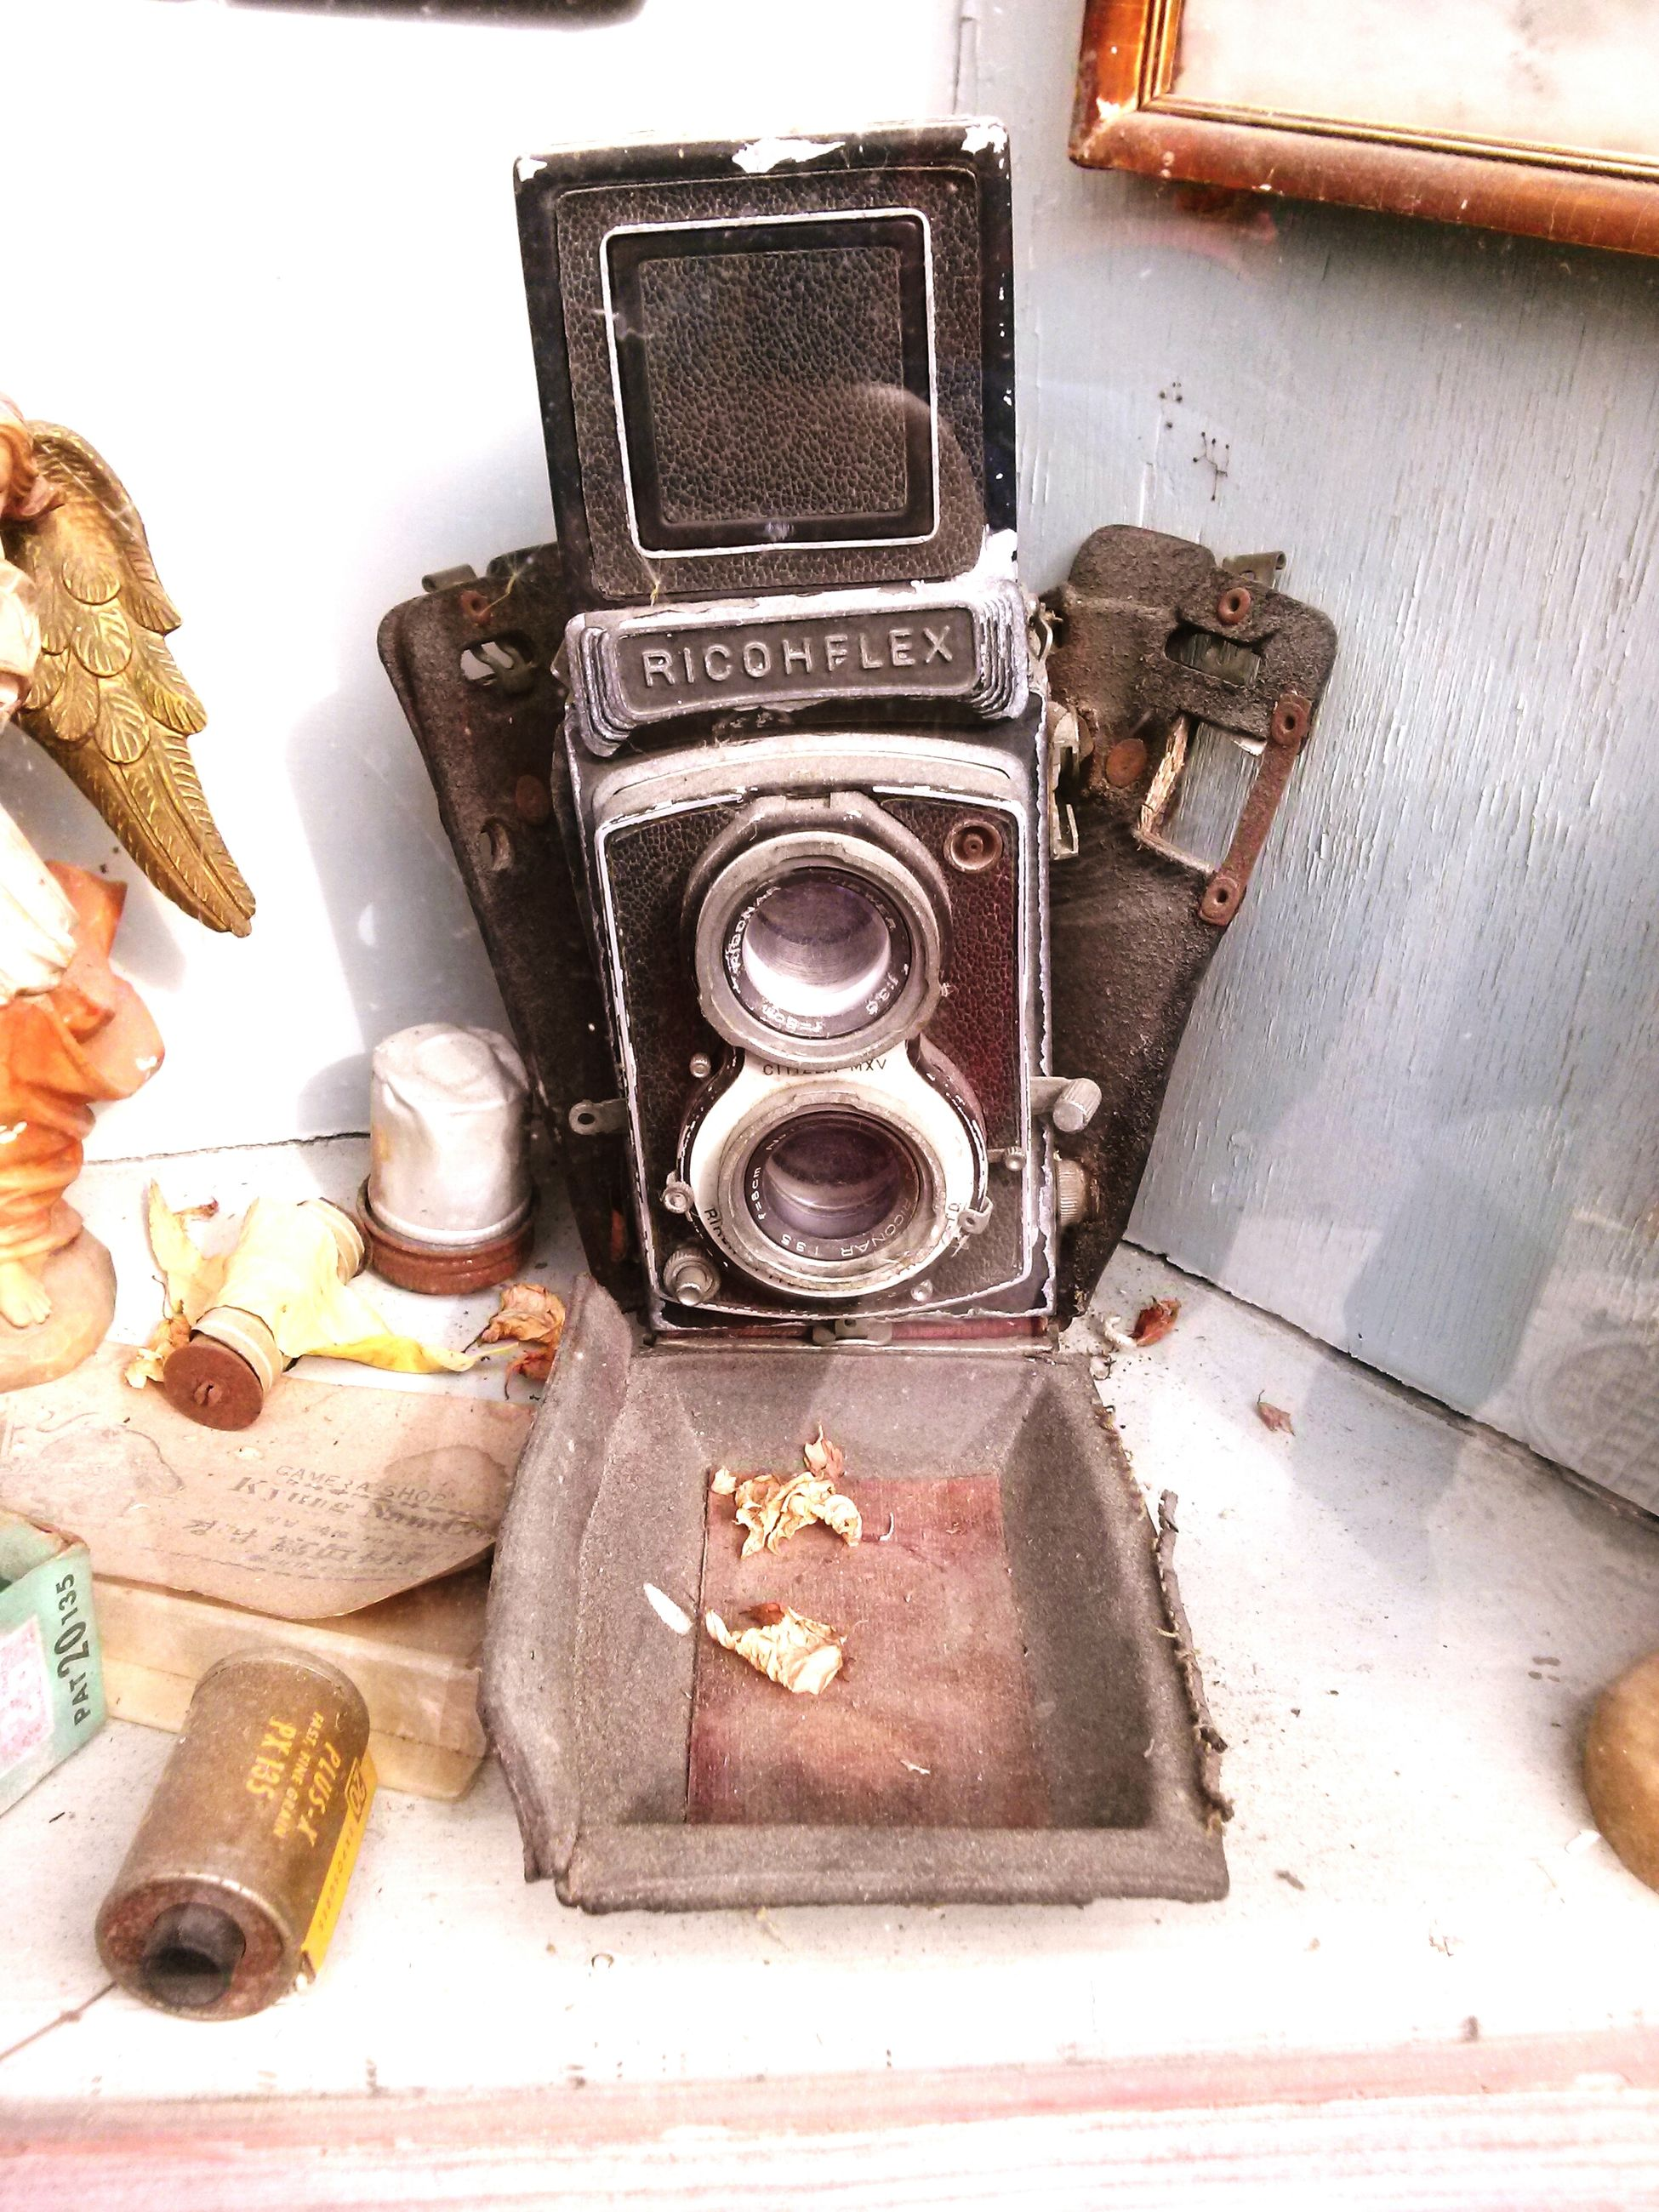 indoors, old, wood - material, old-fashioned, wall - building feature, technology, retro styled, metal, high angle view, still life, obsolete, antique, table, the past, close-up, abandoned, work tool, day, wooden, equipment